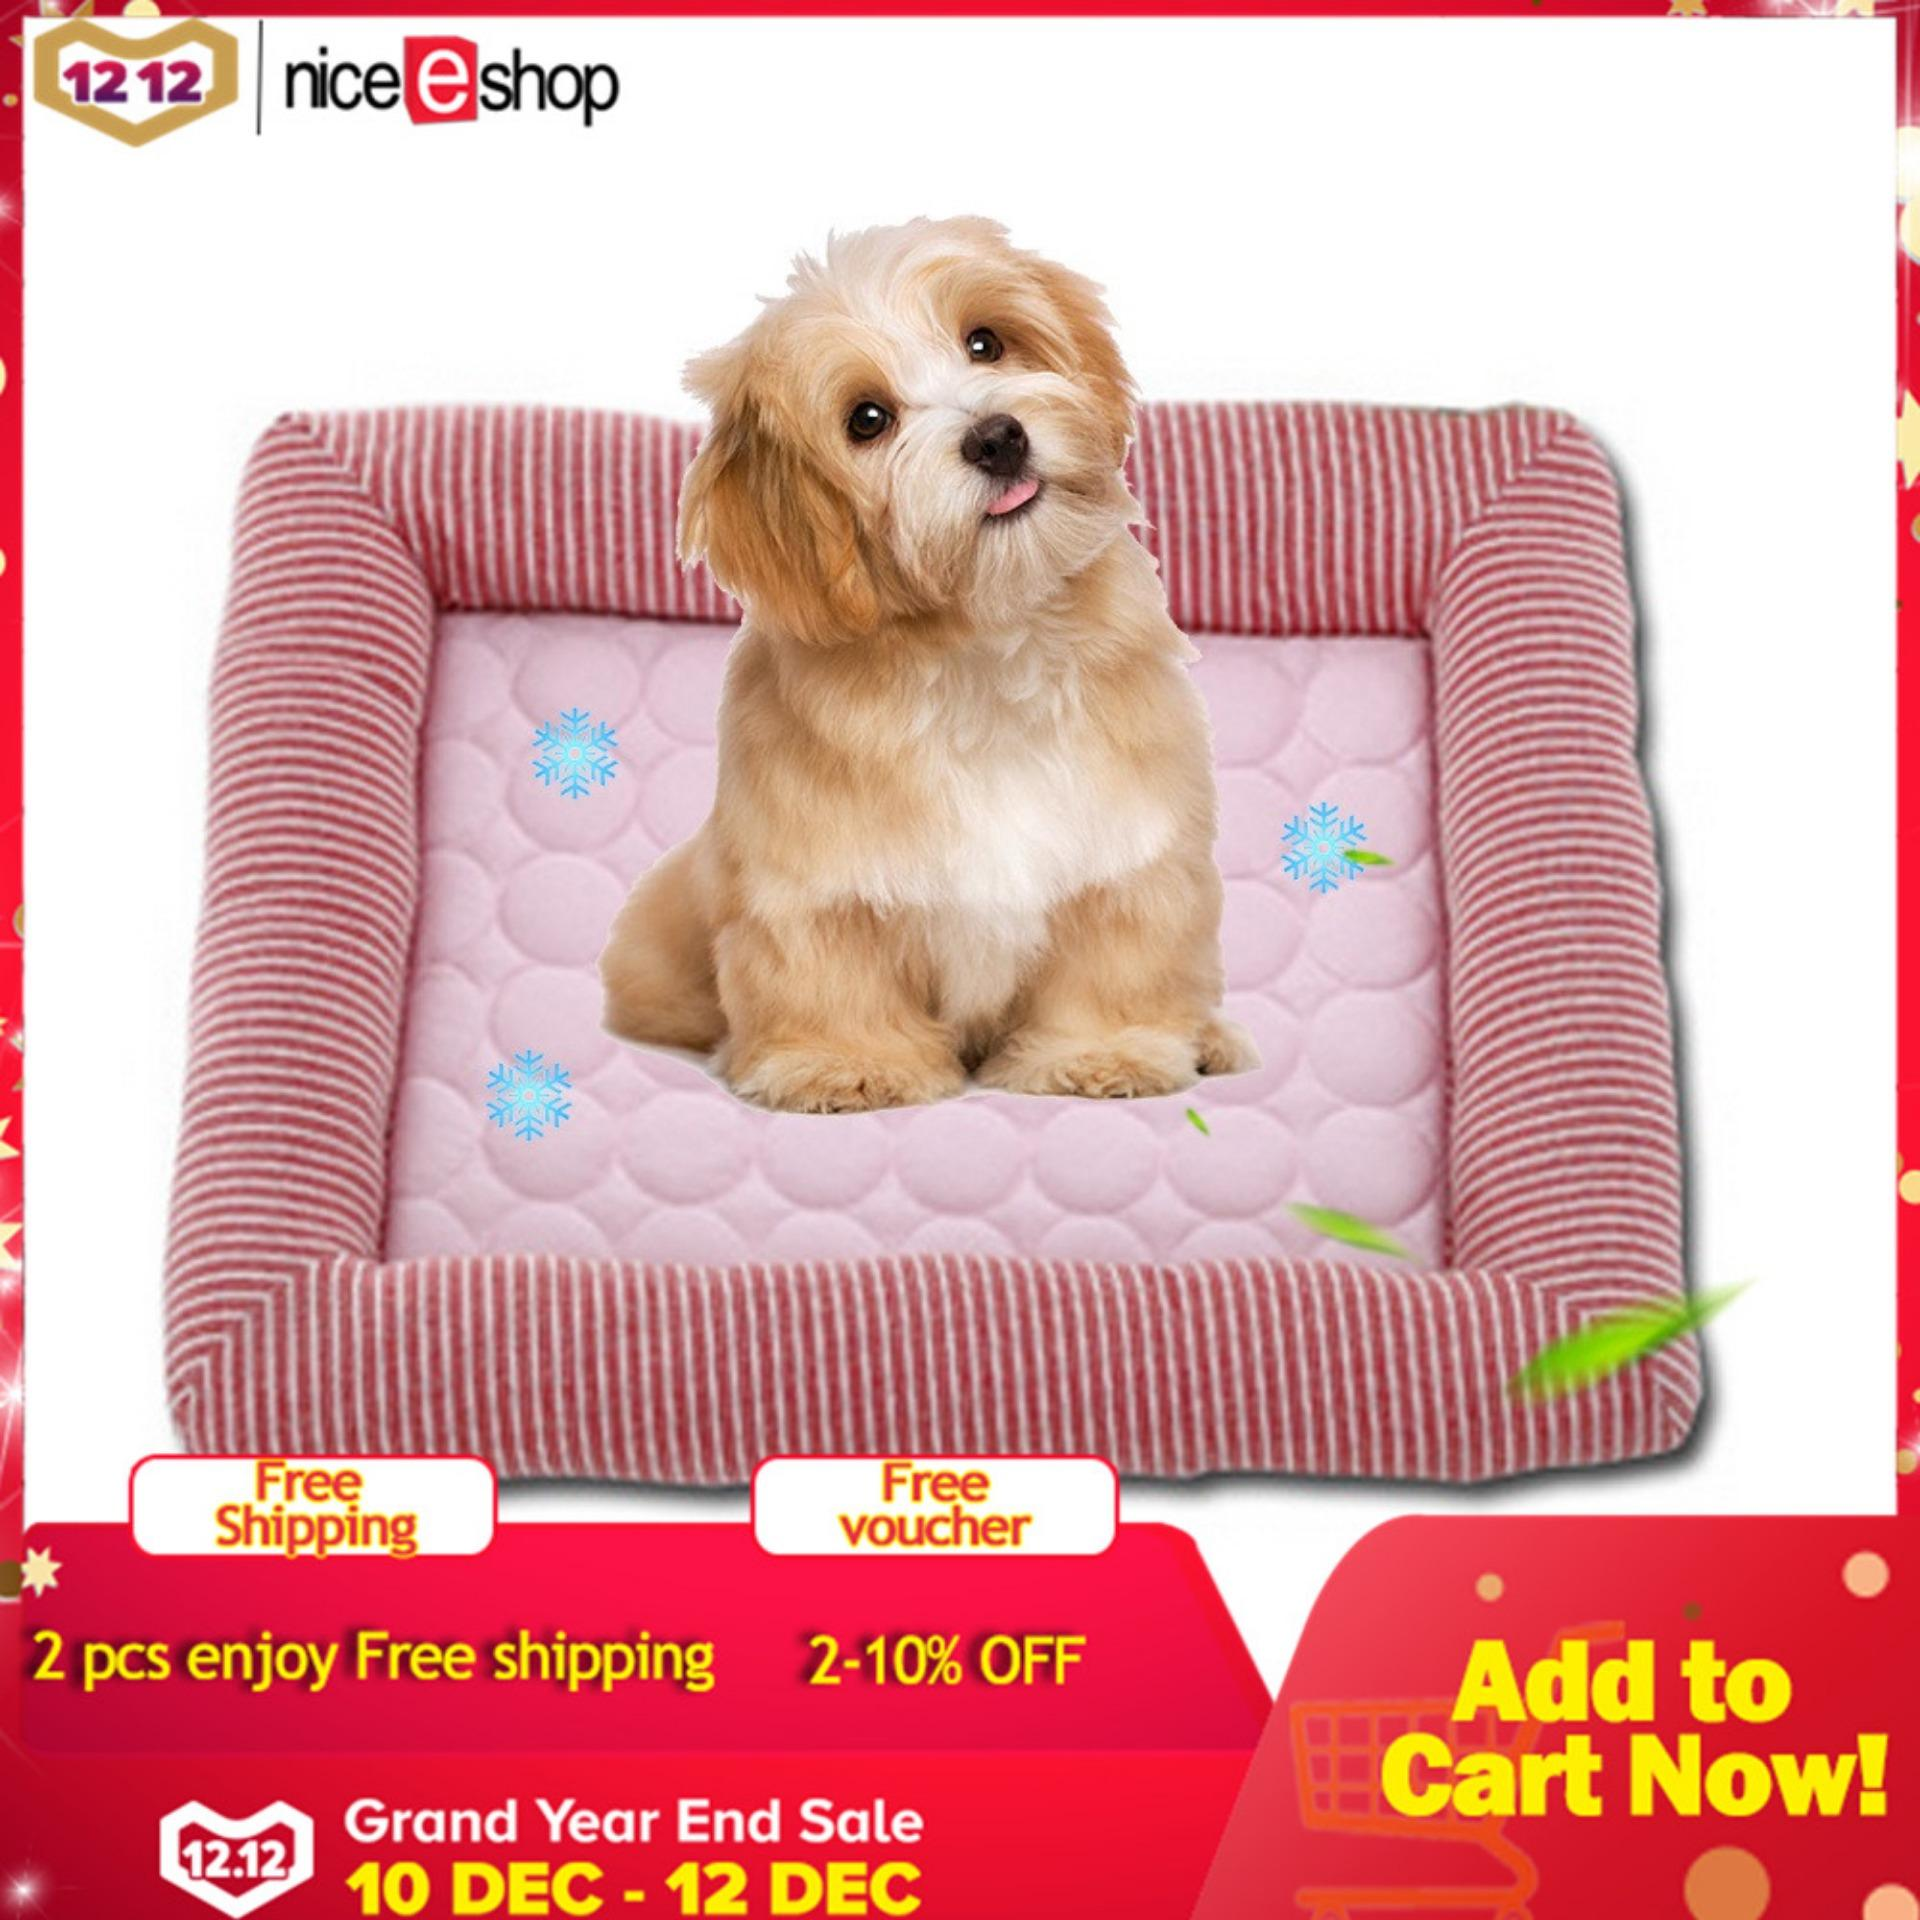 Dog Beds for sale - Pet Beds for Dogs online brands, prices & reviews in Philippines | Lazada.com.ph